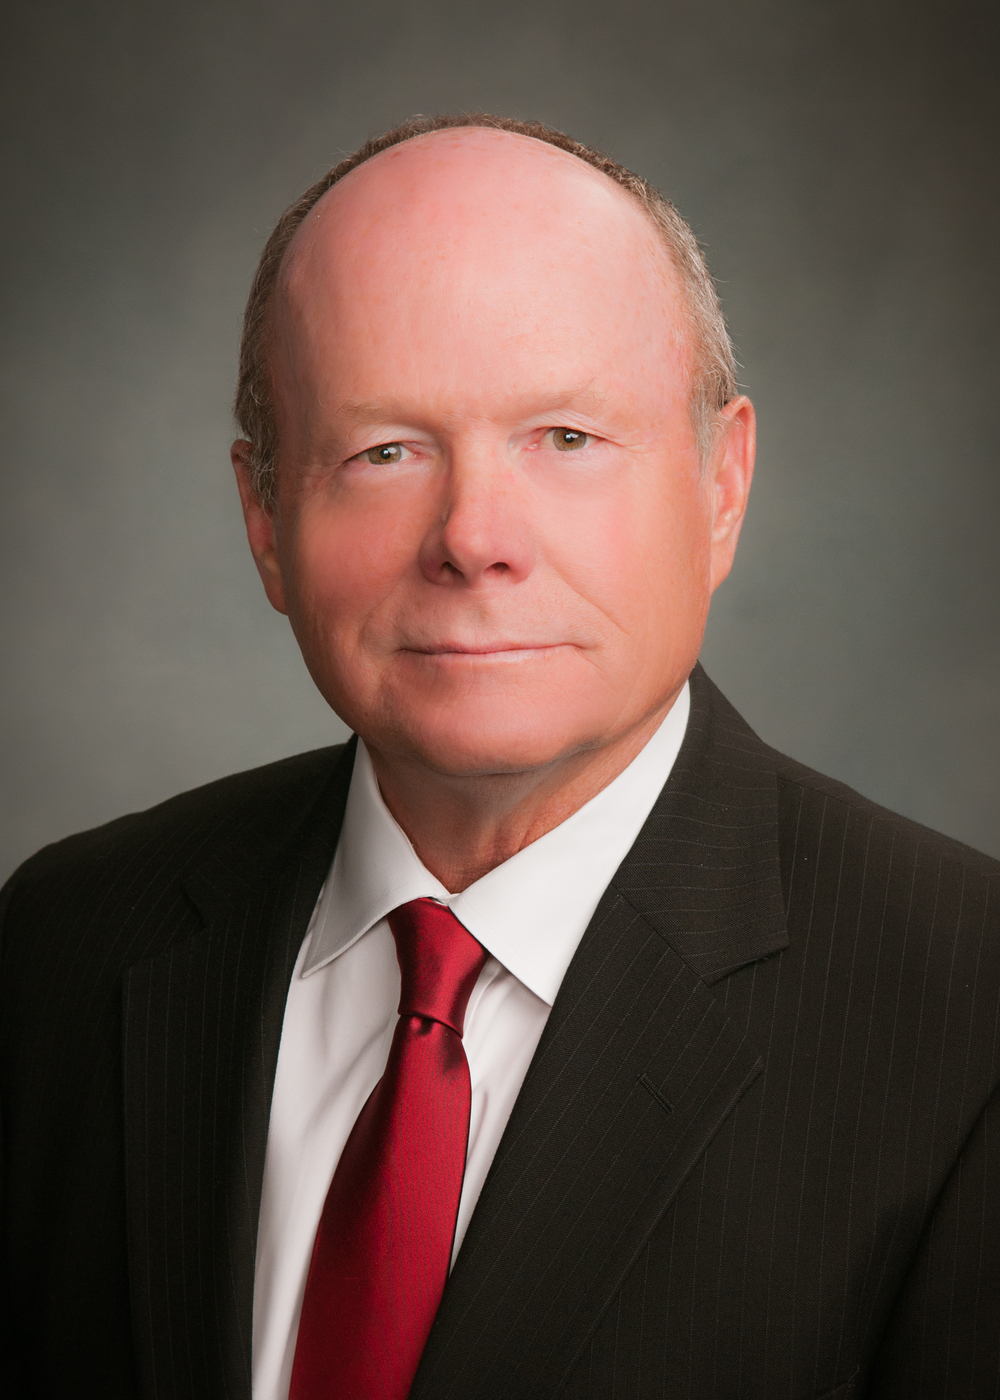 Stephen T. Whitehouse